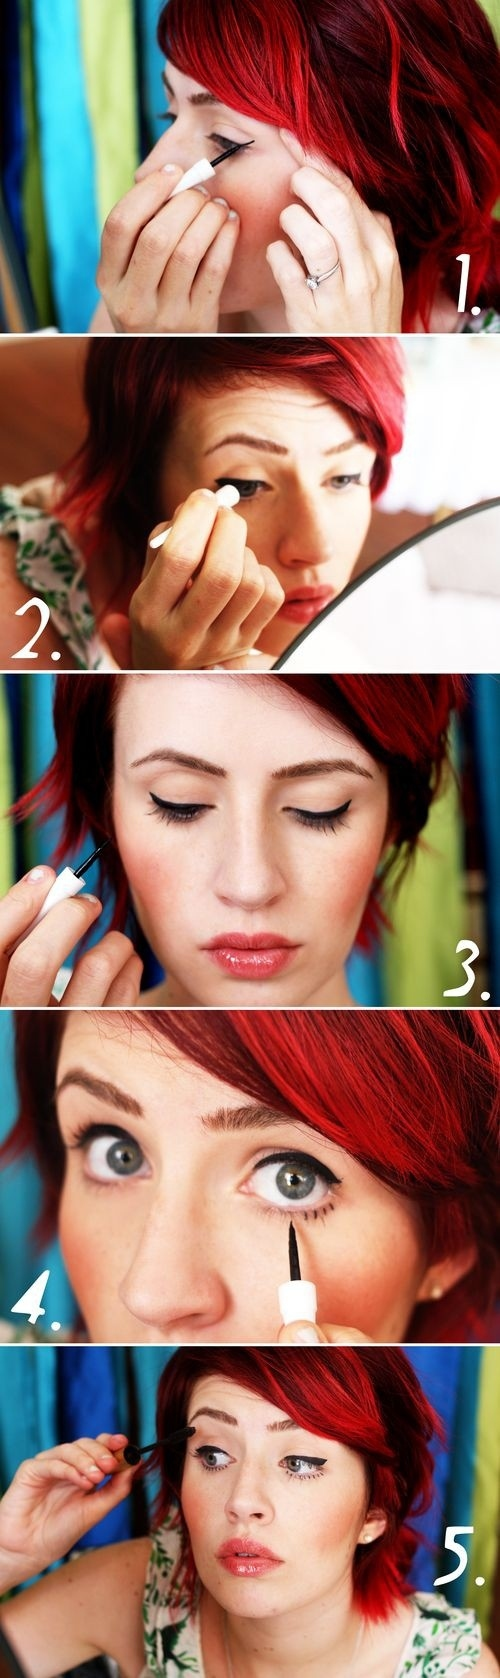 Make up in the style of Twiggy Makeup Tutorial for Glamorous and Dramatic Holiday Looks